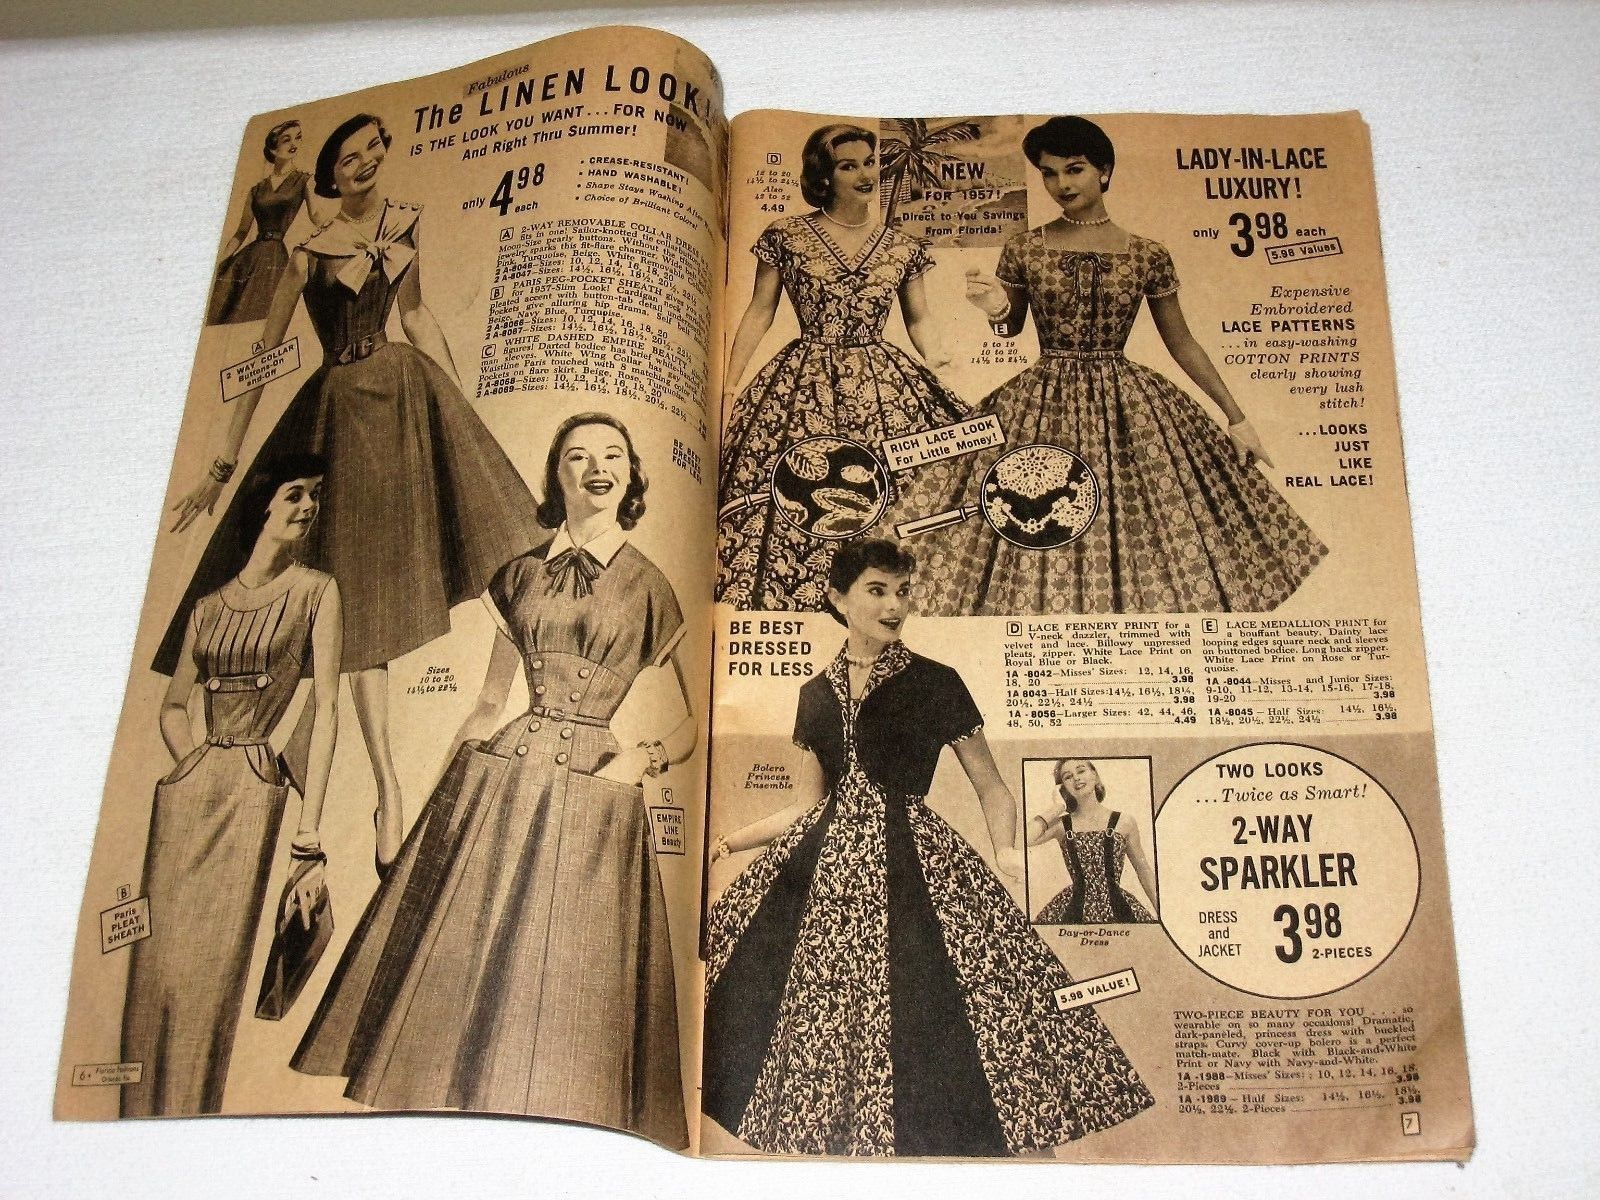 """This is an old Florida Fashions catalog with 40 pages. It is dated 1957 on the cover. Catalog contains original order form. Size is 6 ¼"""" x 10 ¼"""". Some wear from age but nothing major at all. There is a tiny tear at the bottom of the pages (see photo). 